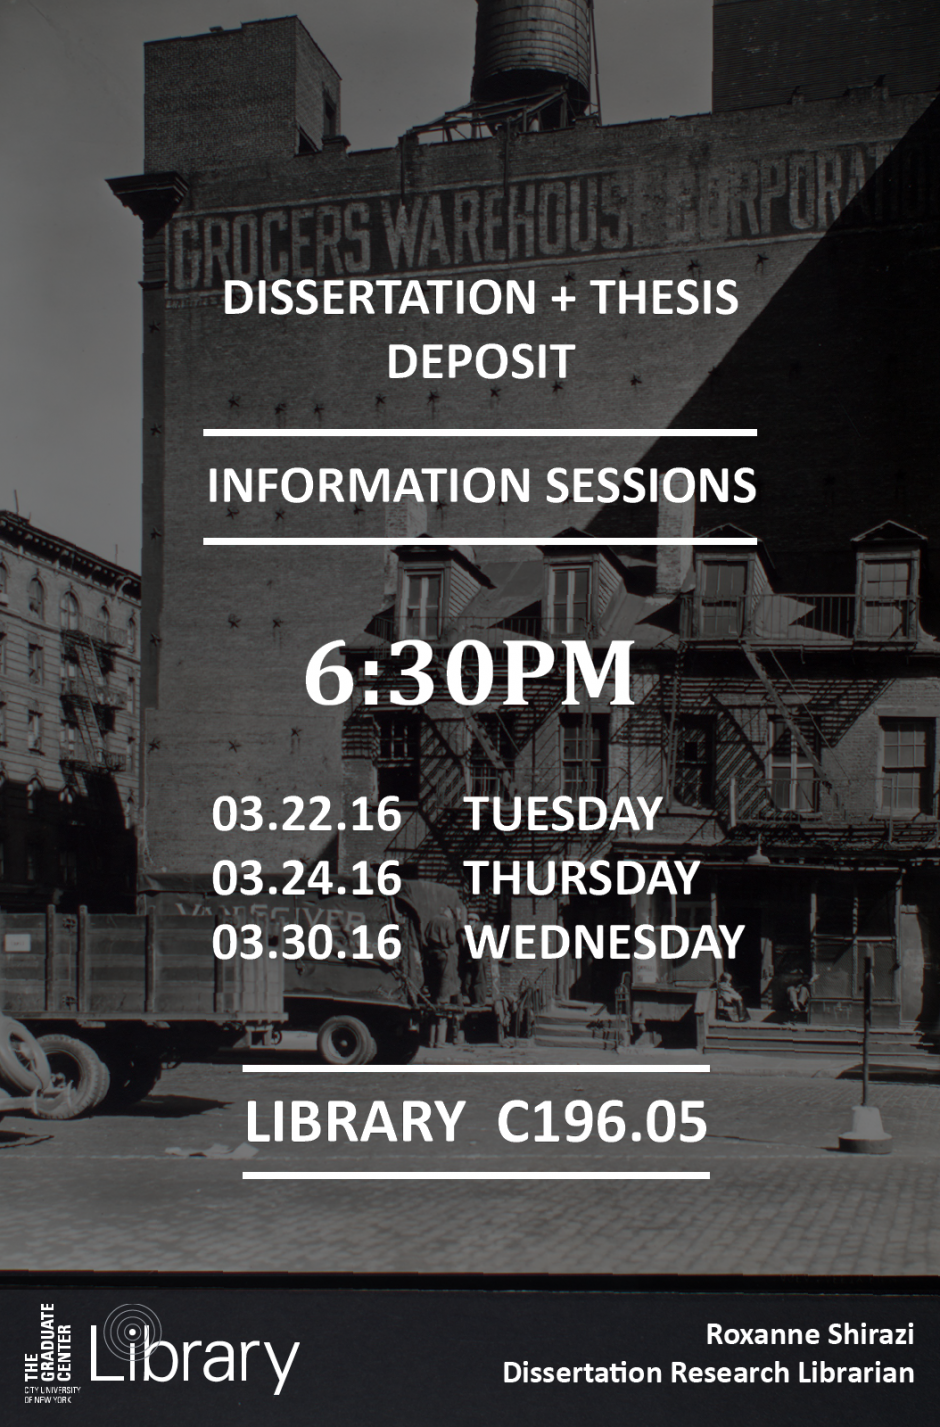 Online dissertation and thesis library